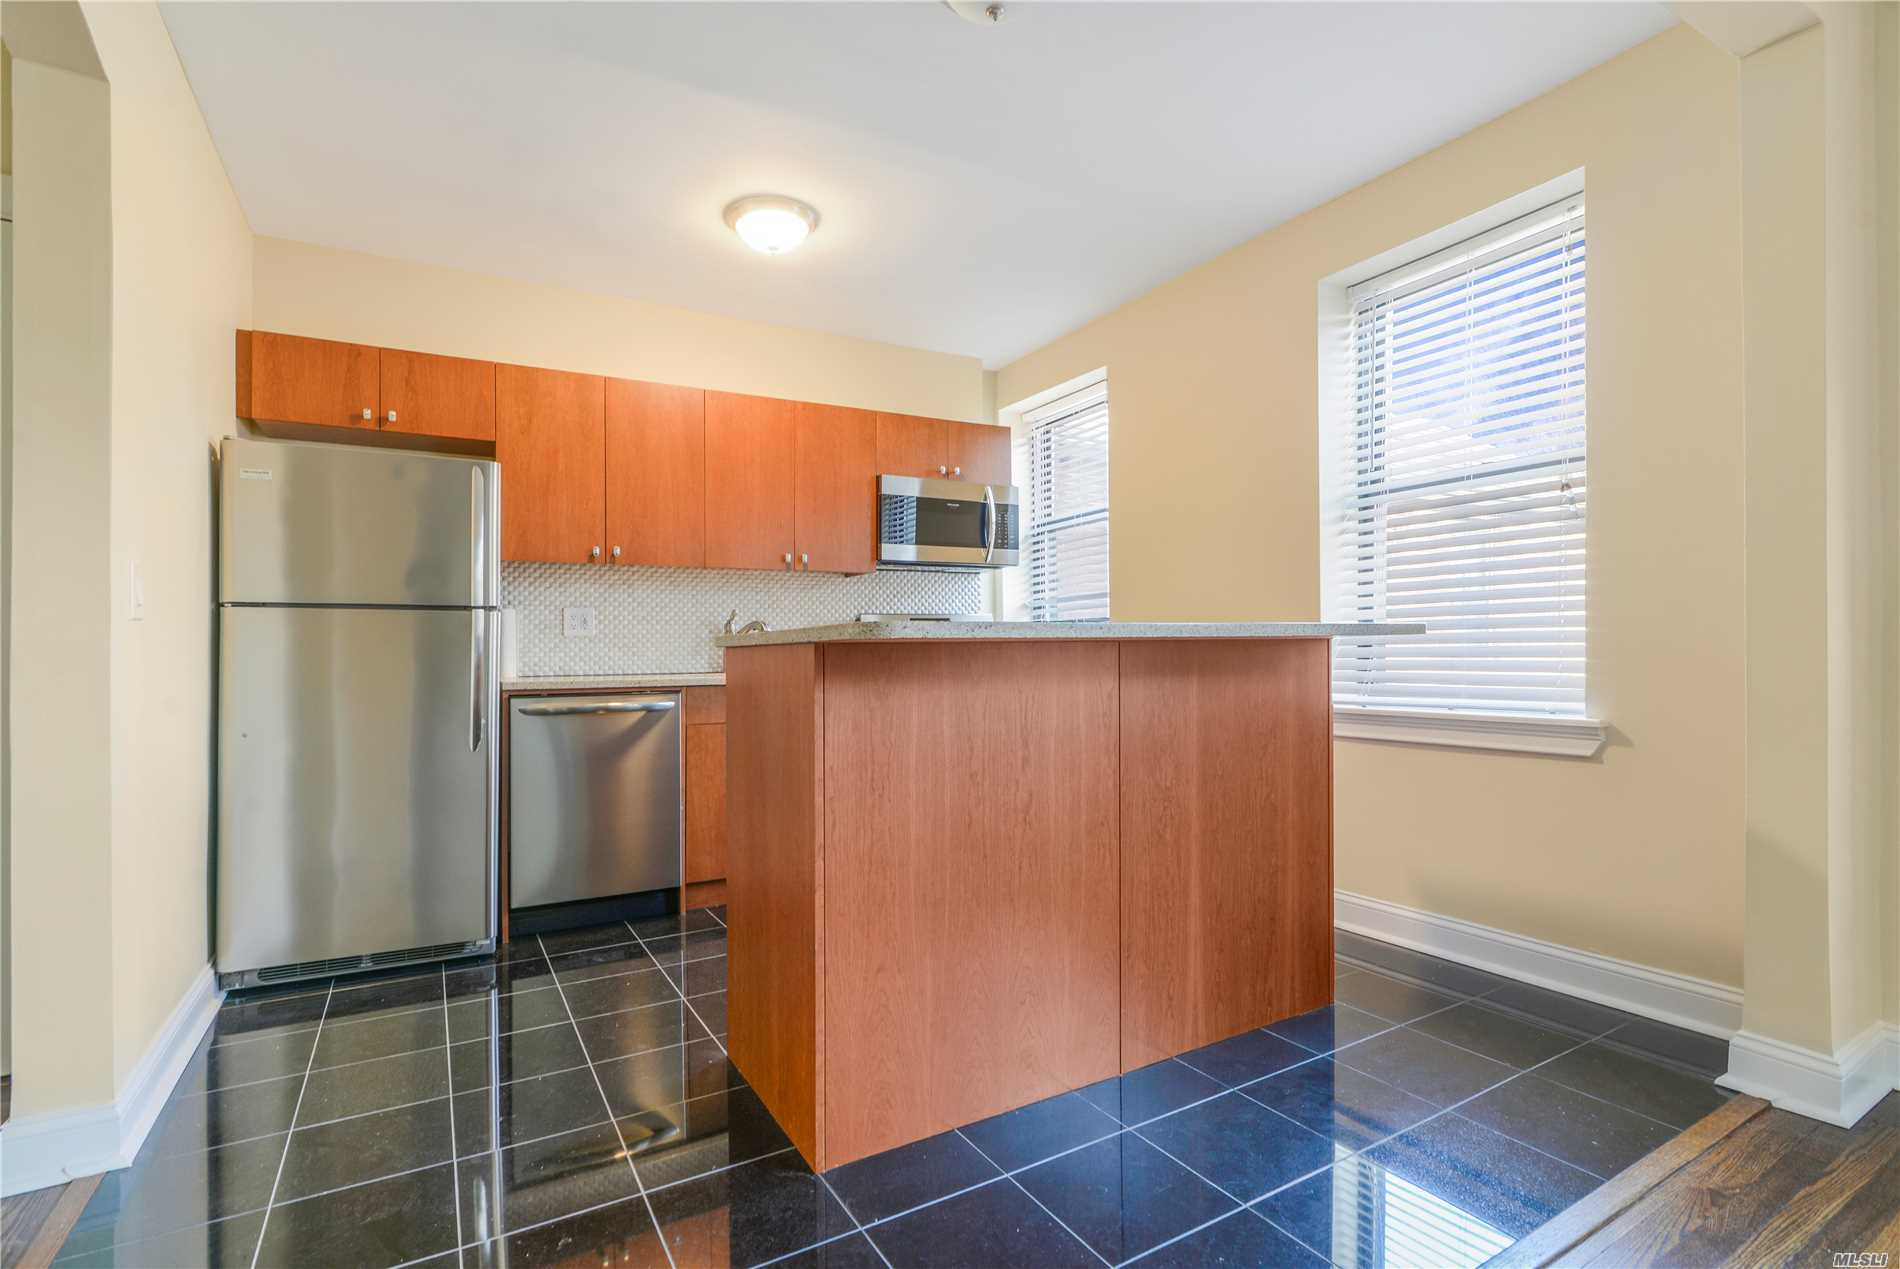 Spacious, Sunny Totally Renovated 4 Room (2 Bedroom ) Apartment Located On Top (Second Floor) Of Building. Refinished Wood Floors, Brand New Kitchen And Bath. True Move In Condition. Separate Basement Storage Room. Short Walk To Shopping.